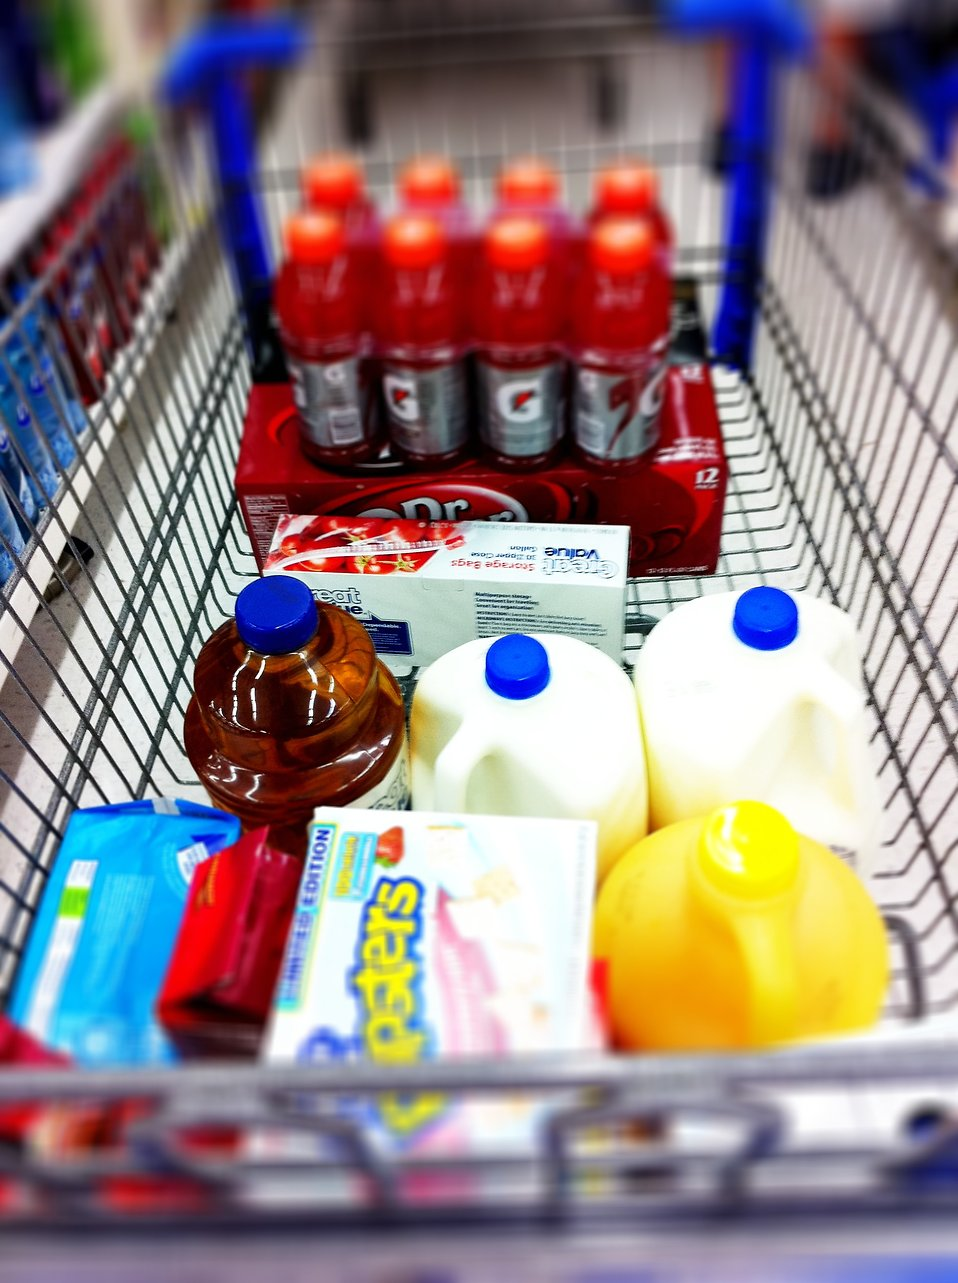 17634-shopping-cart-with-groceries-pv.jpg